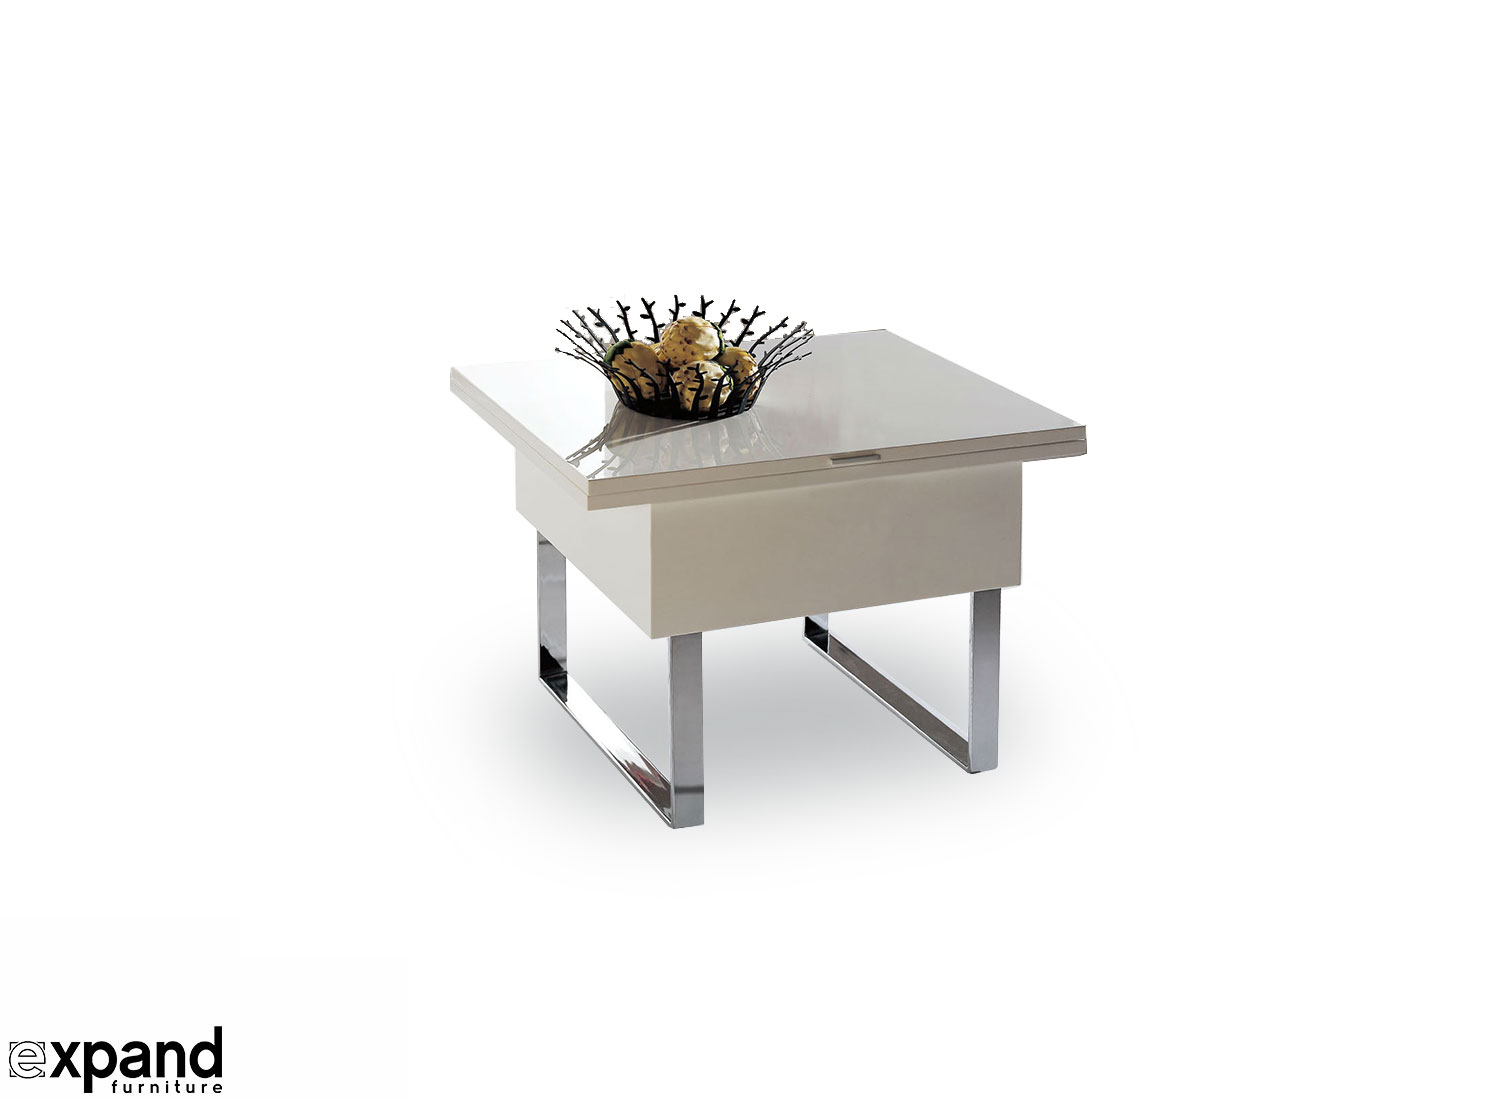 Space saving dining tables wenge minima simple aluminium dining table -  Wenge Minima Simple Aluminium Dining Table 30 Creative Space Saving Furniture Download